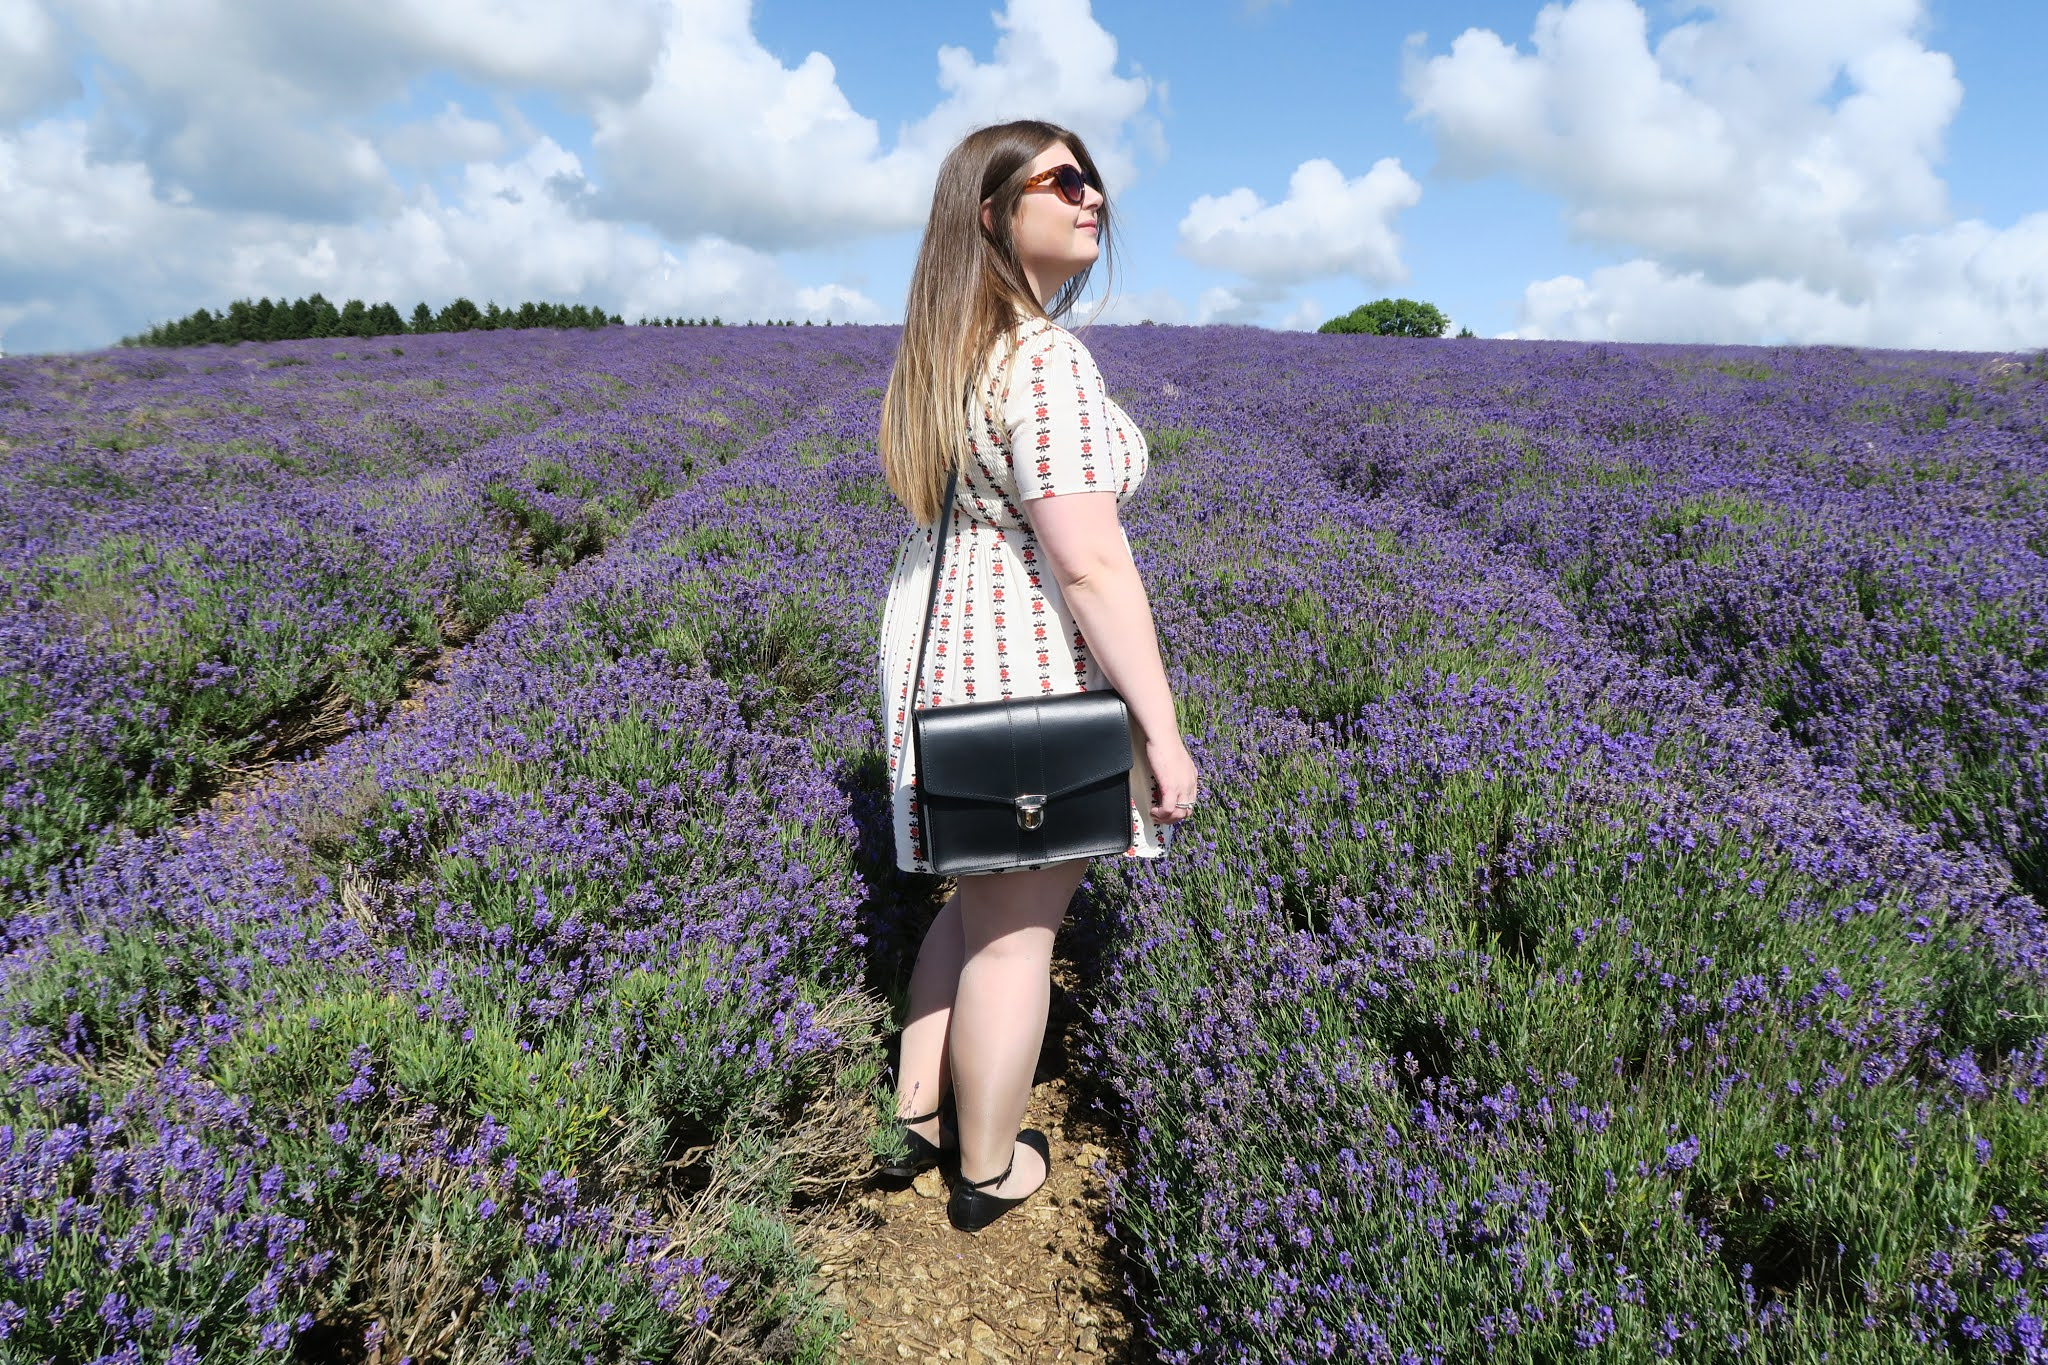 Grace is wearing a short white dress. She is standing in a field full of cotswold lavender